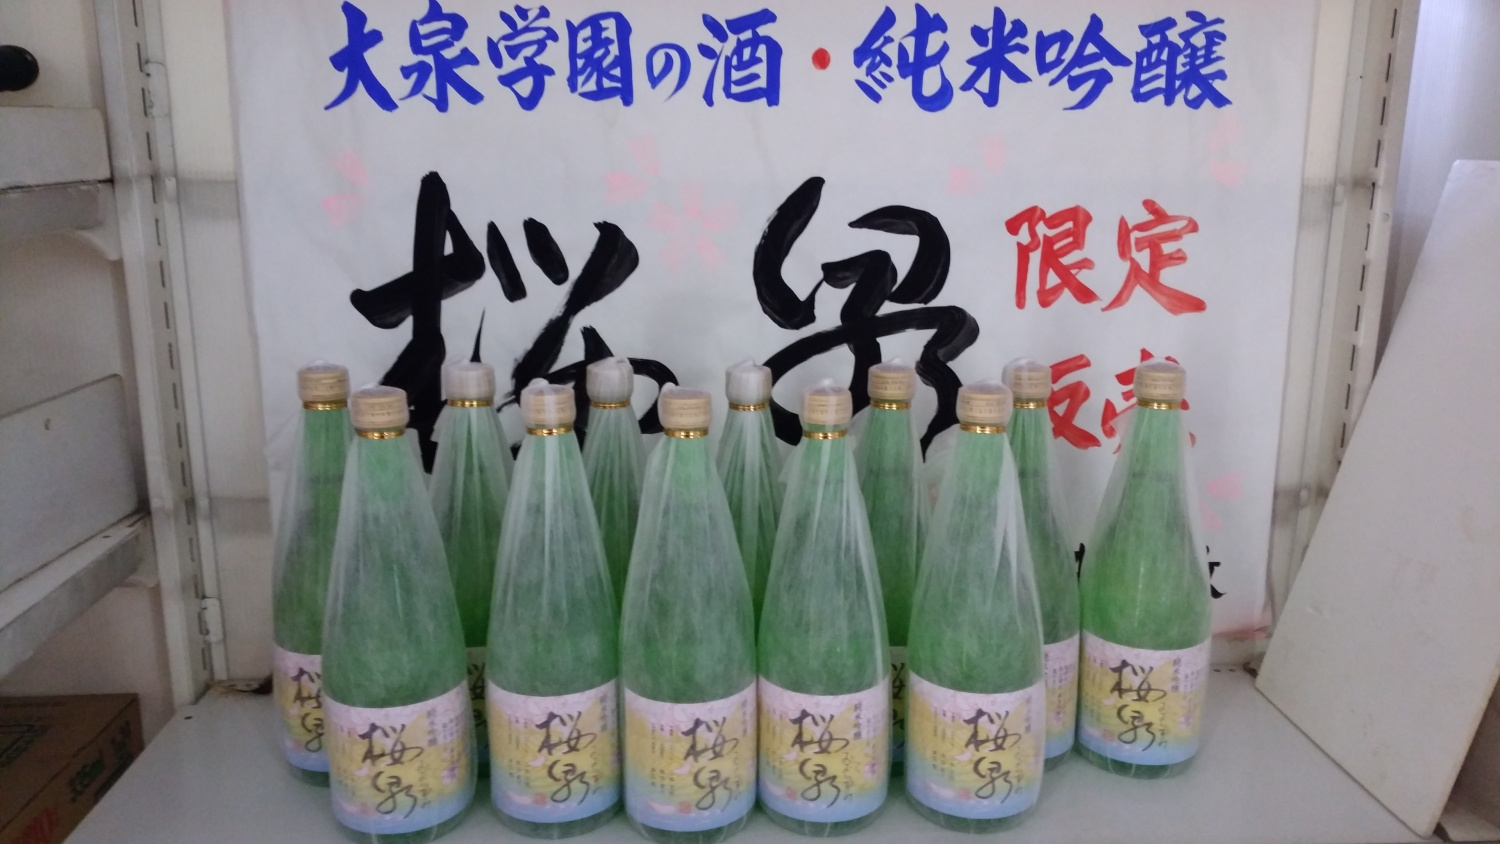 It was released in liquor, Oizumi (Izumi) this year of Oizumigakuen